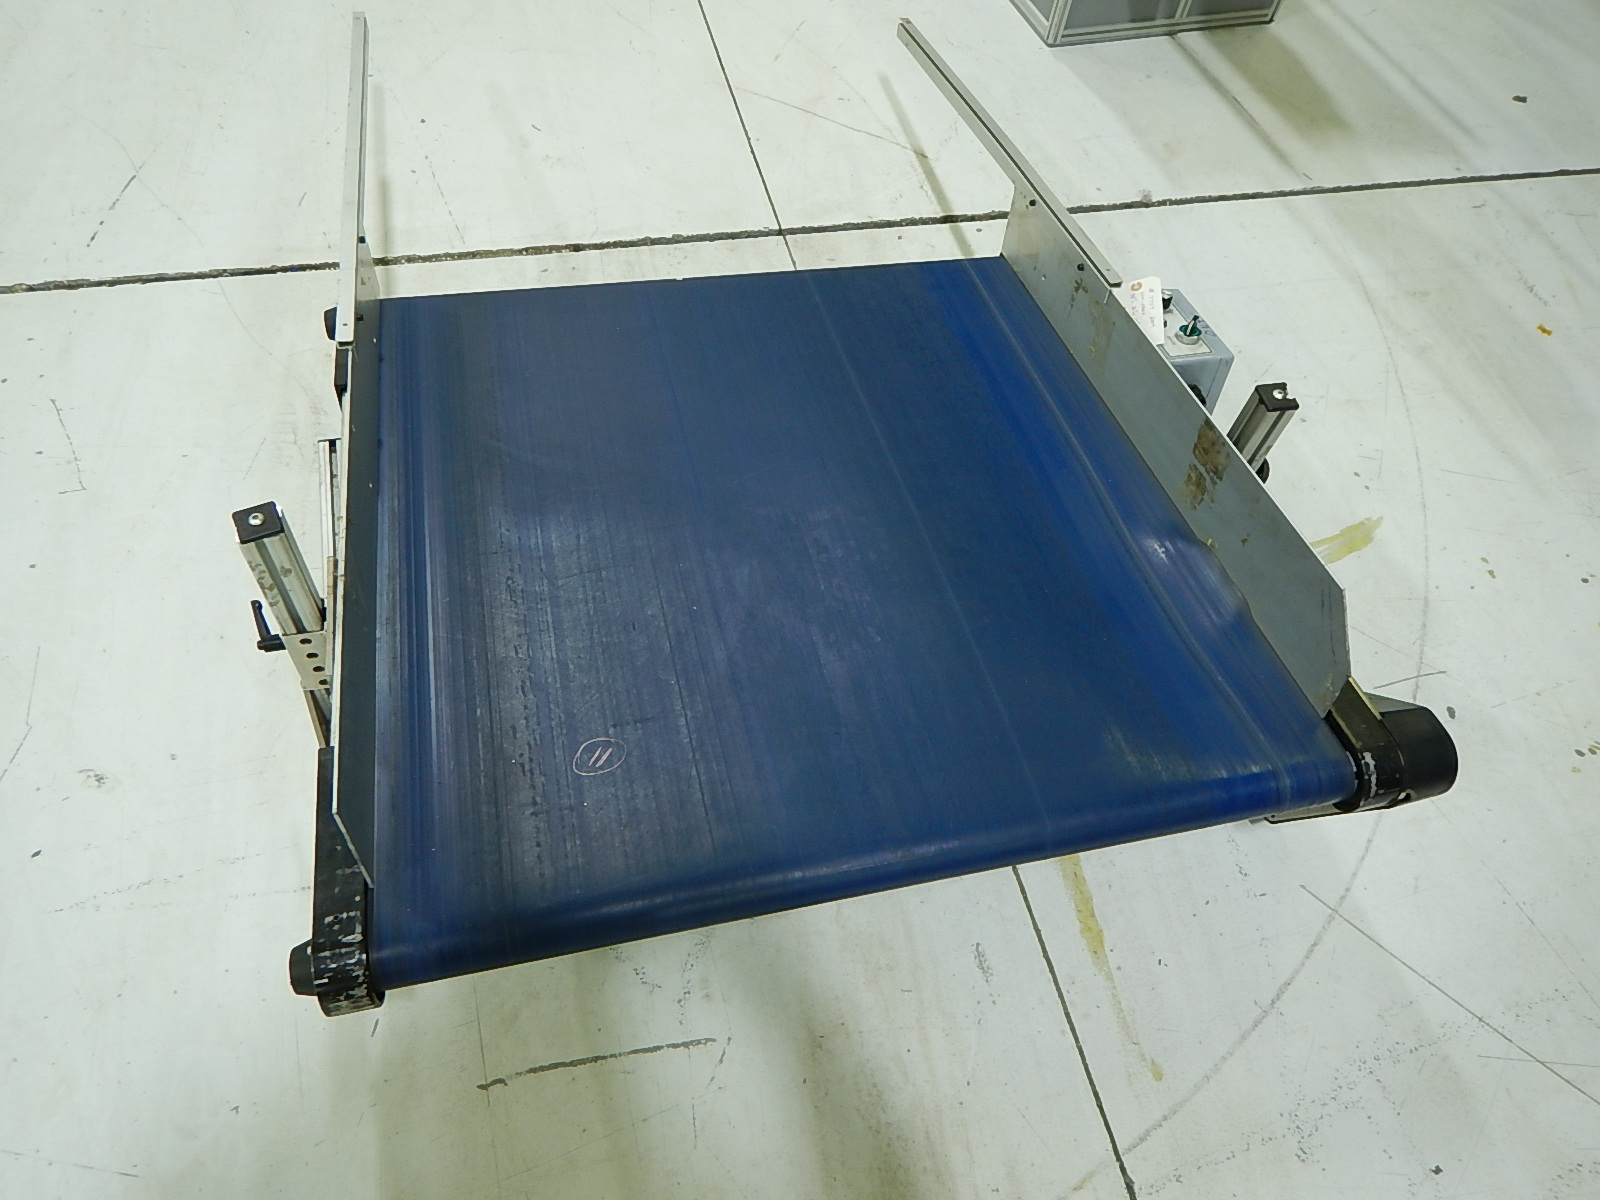 HFA 2210 Conveyor, Horizontal Style, 38 in. long x 36 in. wide, 110V,  Yr. 2009 - Parts Only,